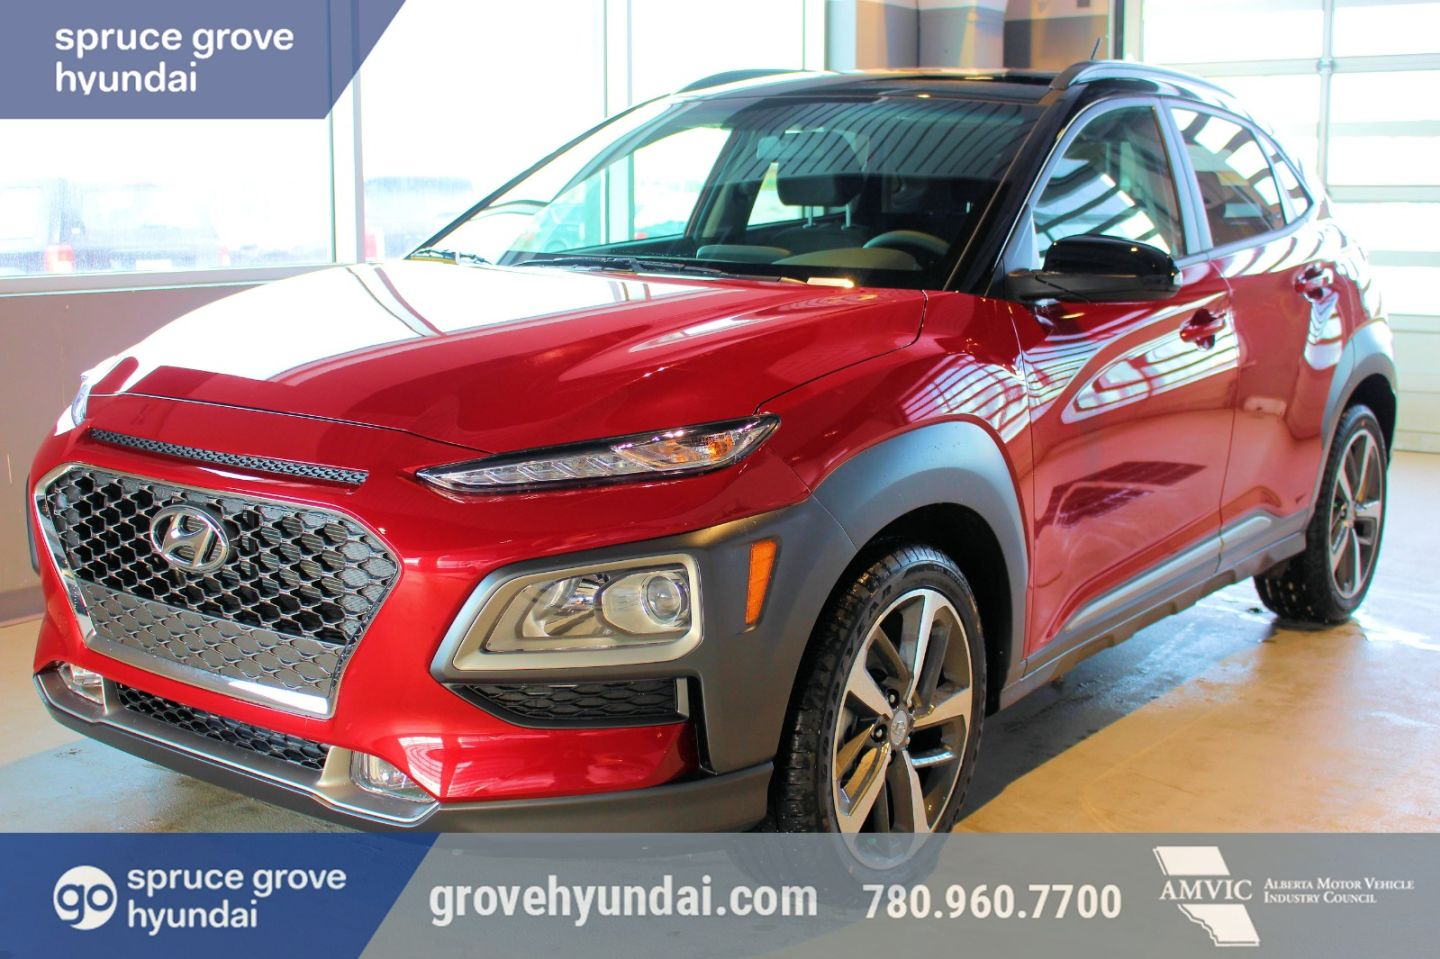 2021 Hyundai Kona Trend for sale in Spruce Grove, Alberta